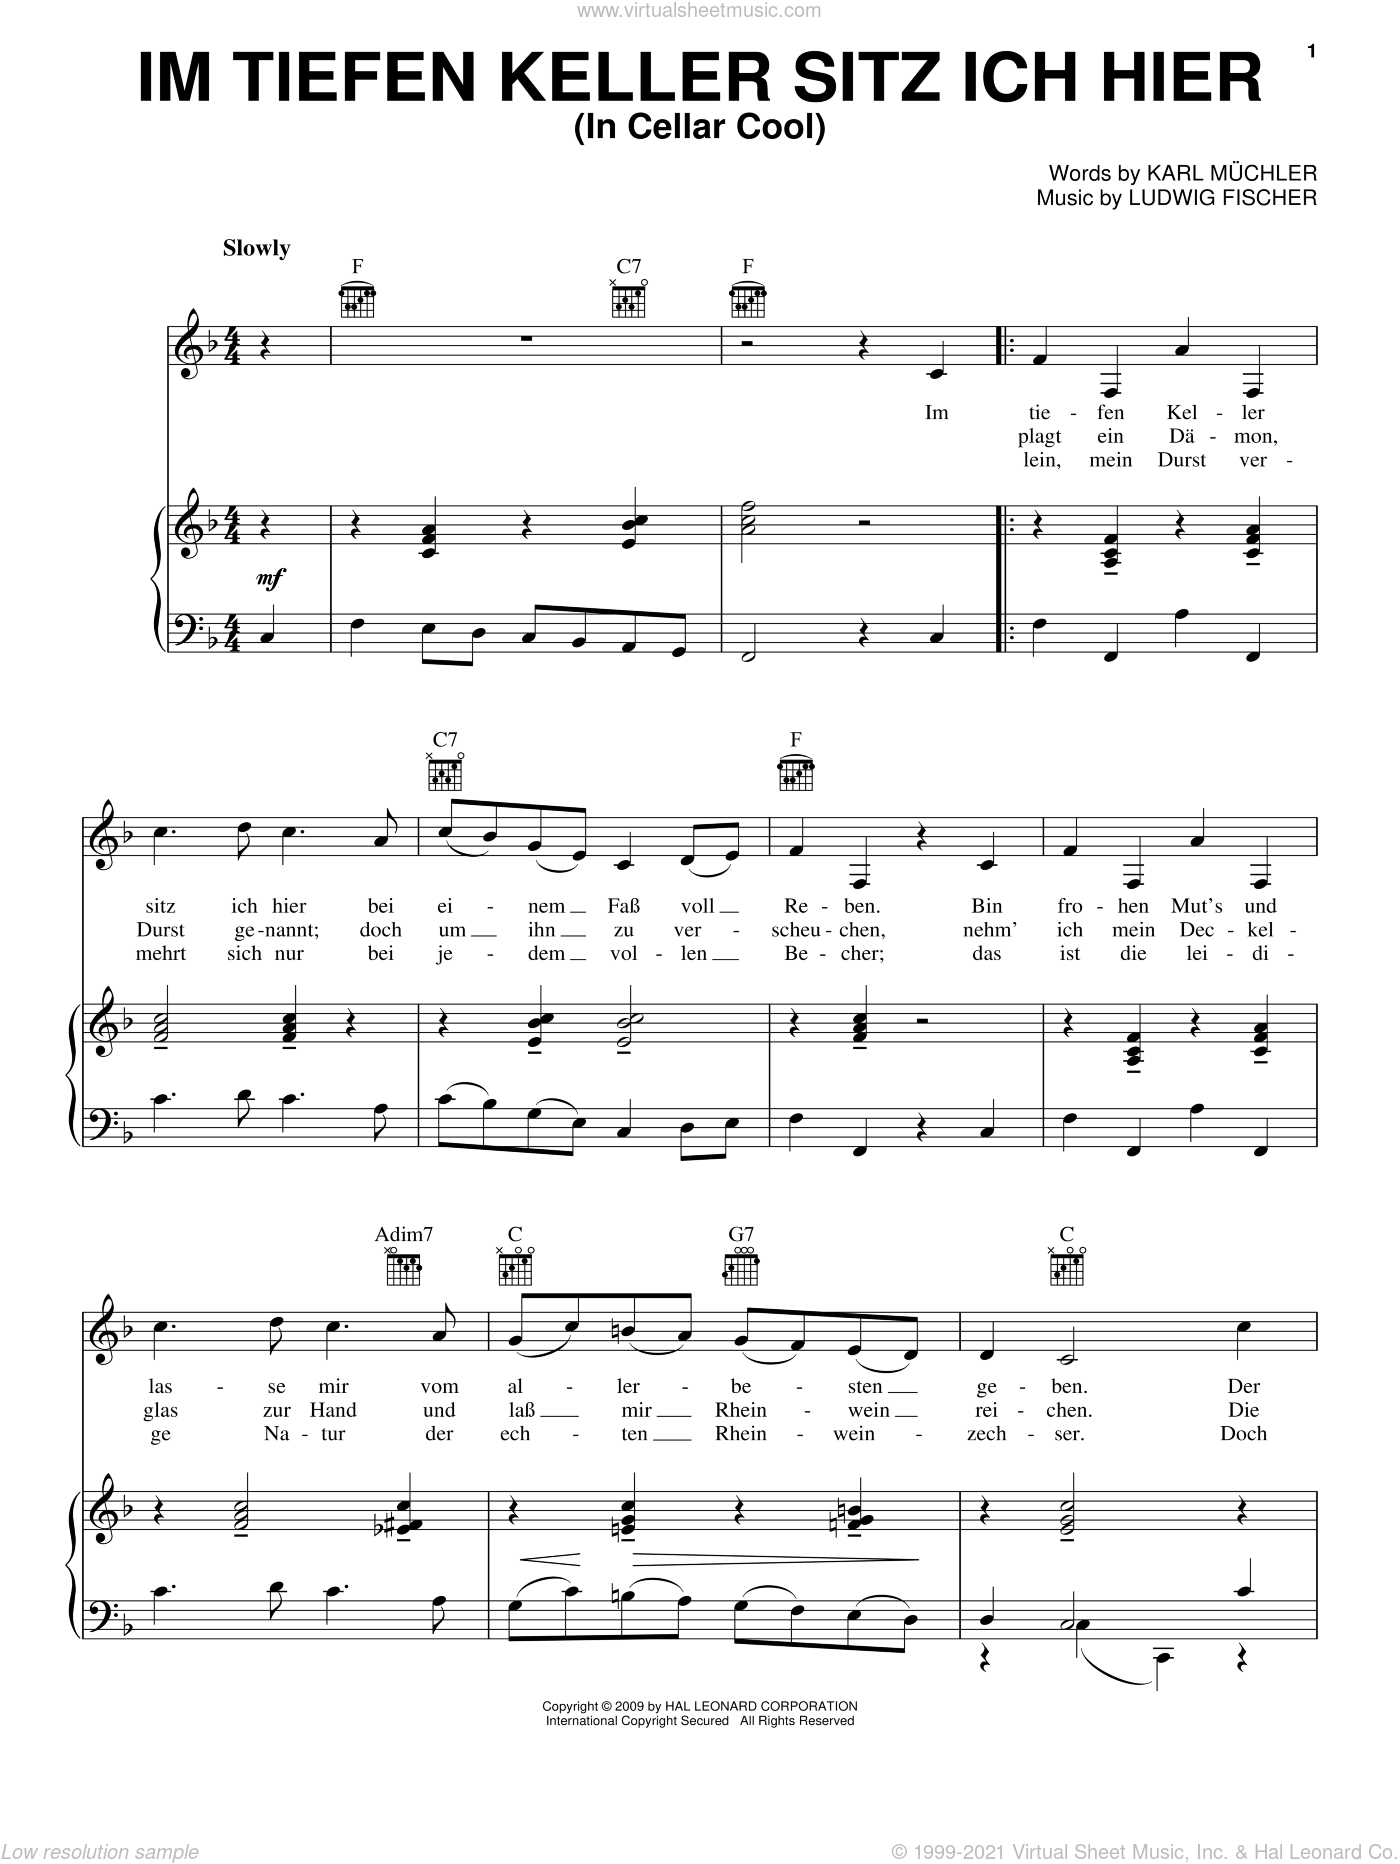 Im Tiefen Keller Sitz Ich Hier (In Cellar Cool) sheet music for voice, piano or guitar by Karl Muchler and Ludwig Fischer, intermediate